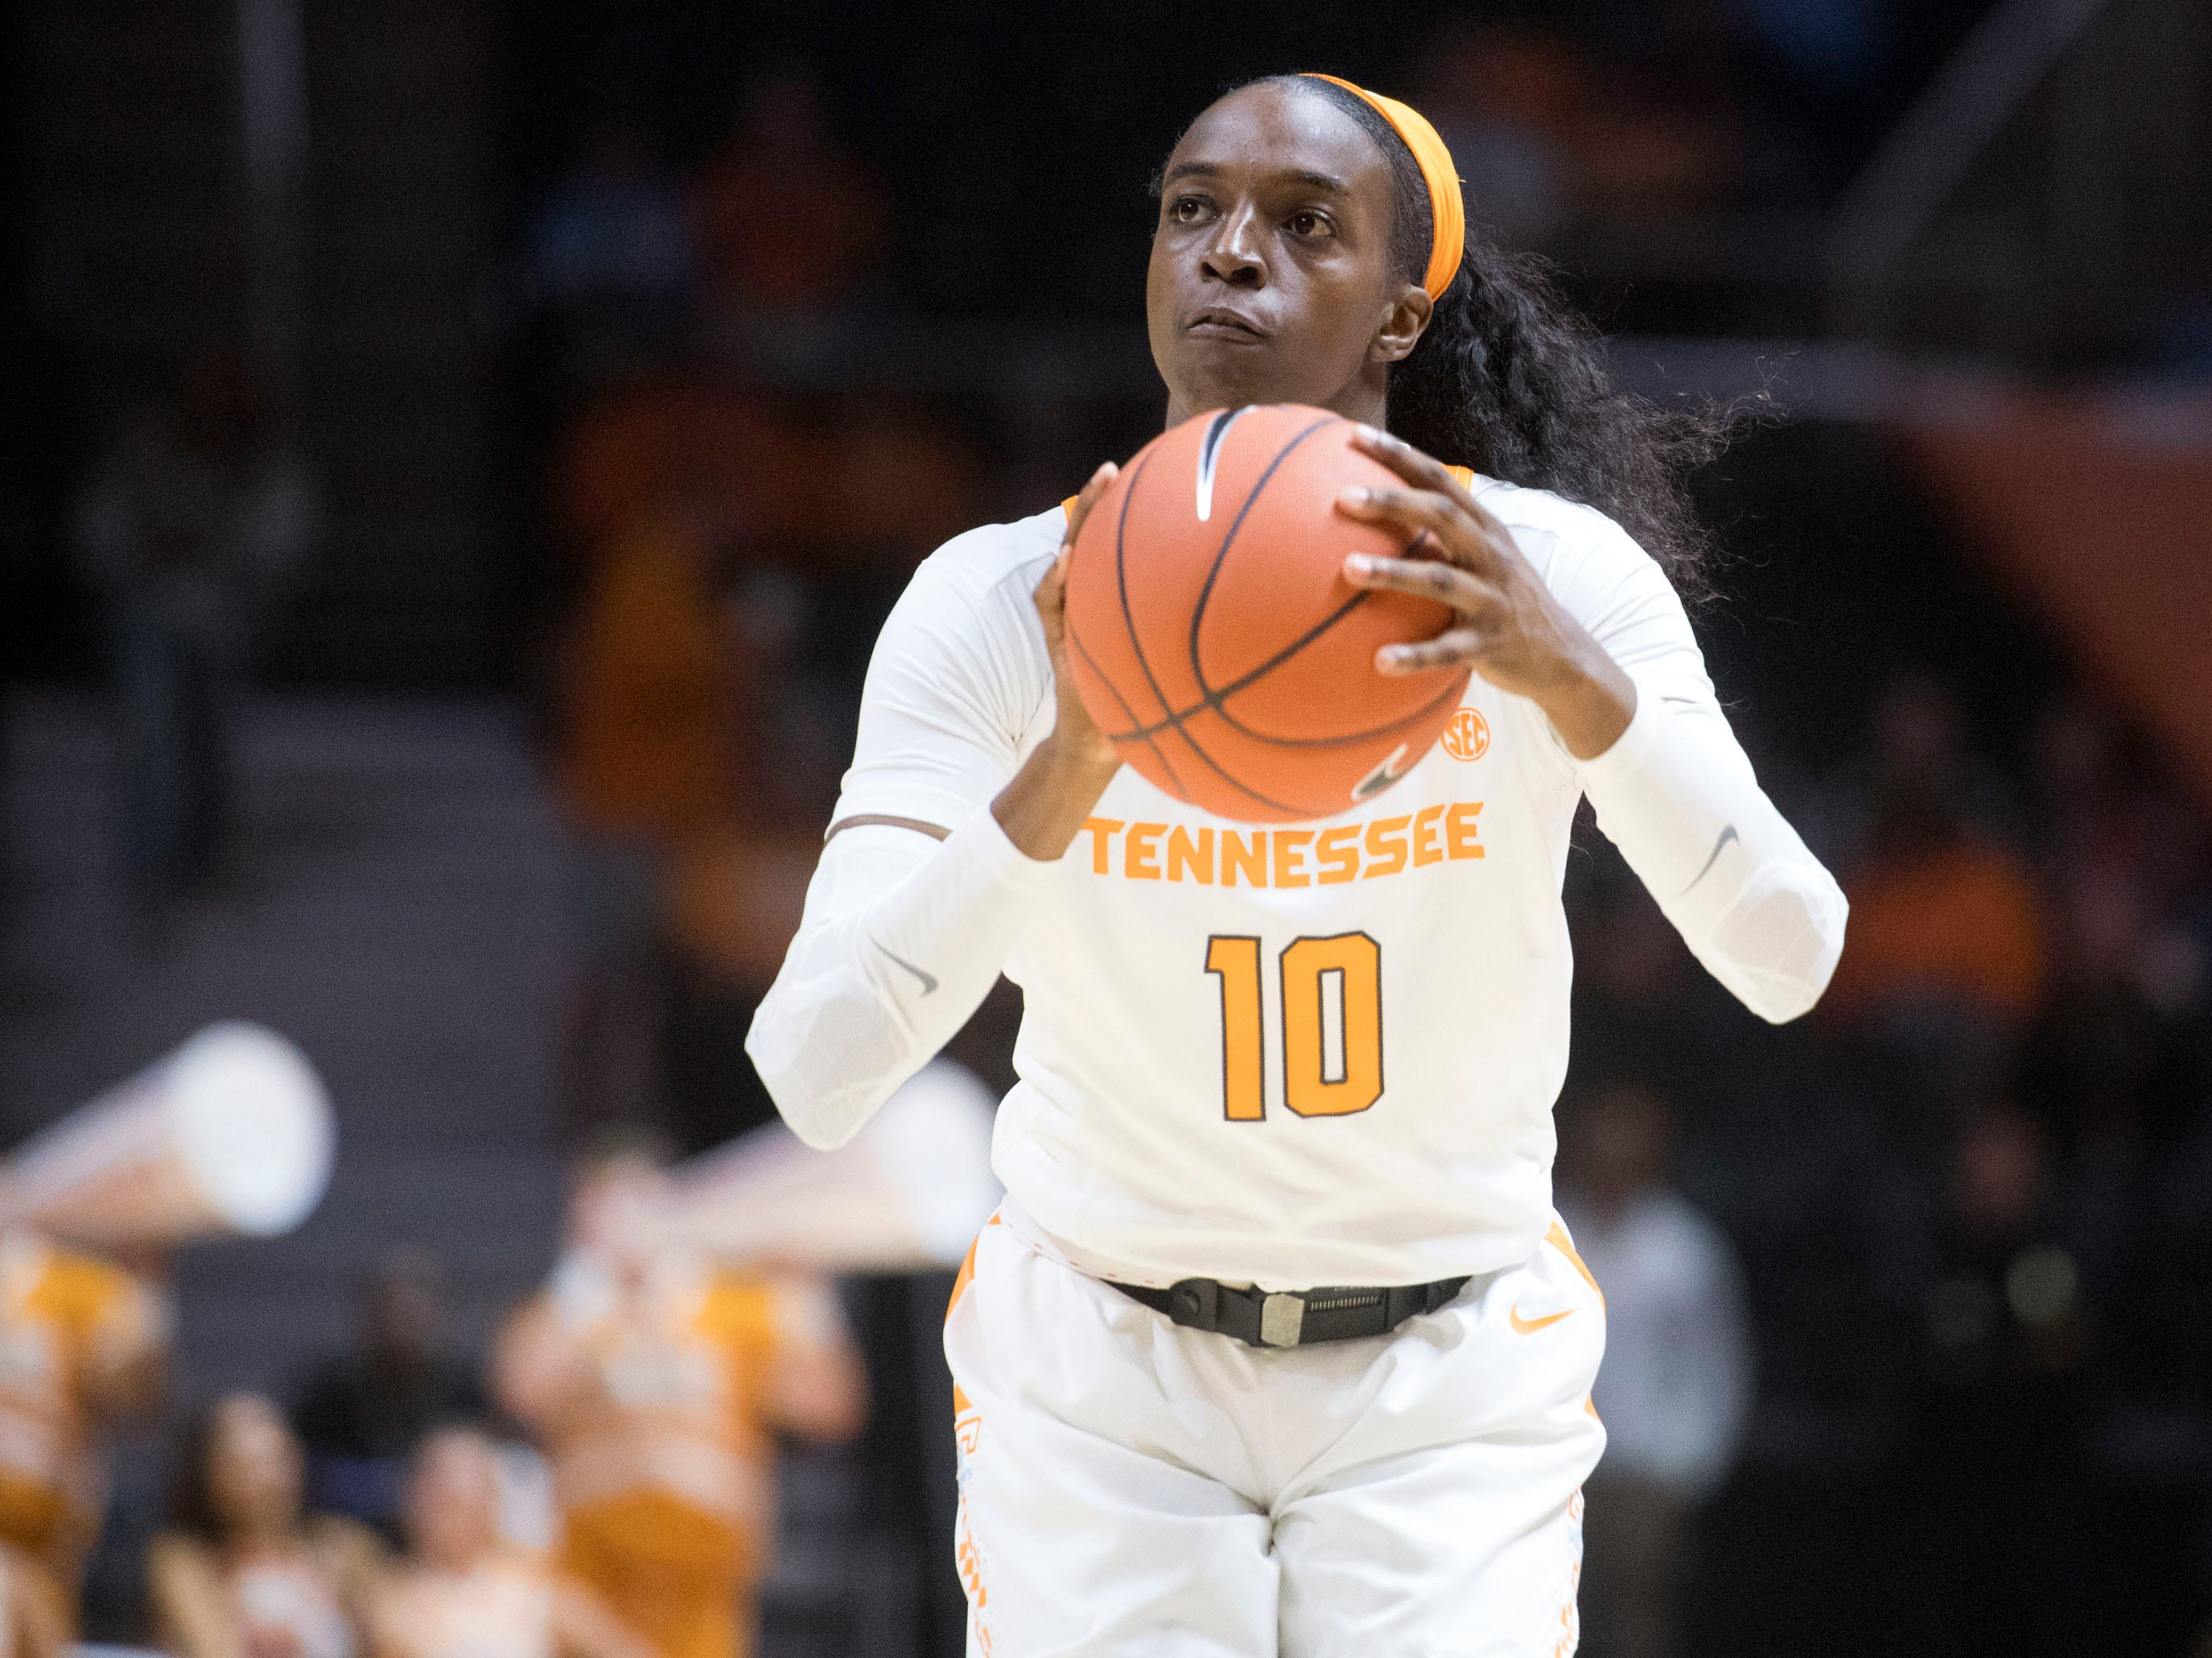 Tennessee's Meme Jackson (10) scores three-points against Florida A&M's on Sunday, November 18, 2018 at Thompson-Boling Arena.